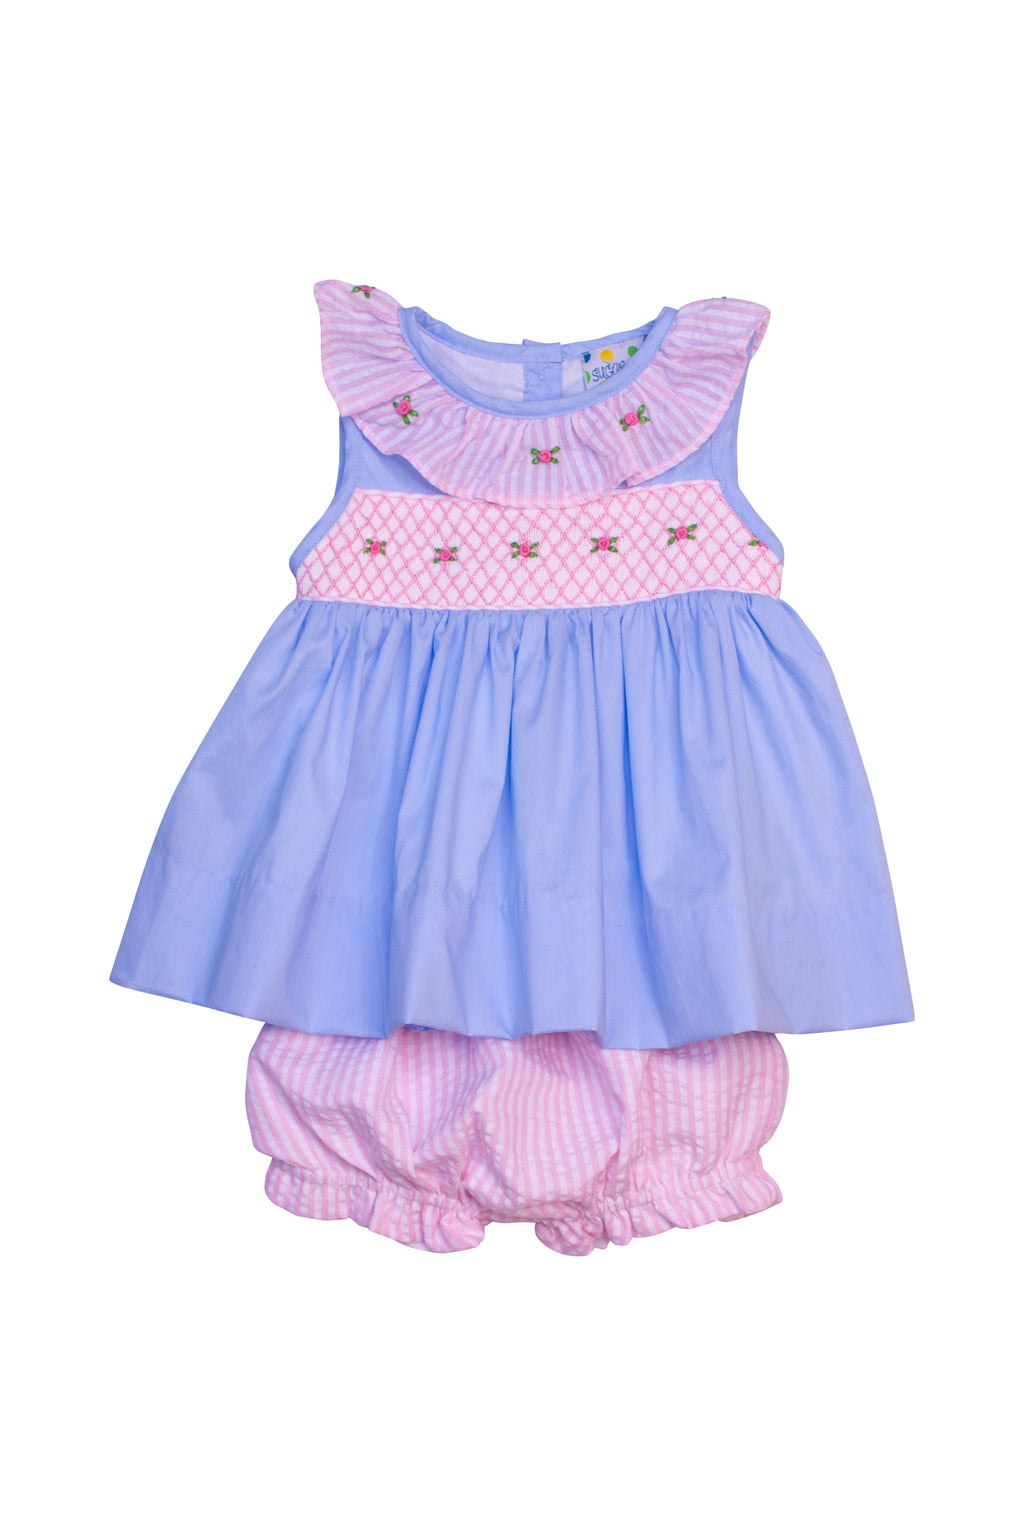 Girls Blue/Pink Seersucker Smocked Floral Bloomer Set